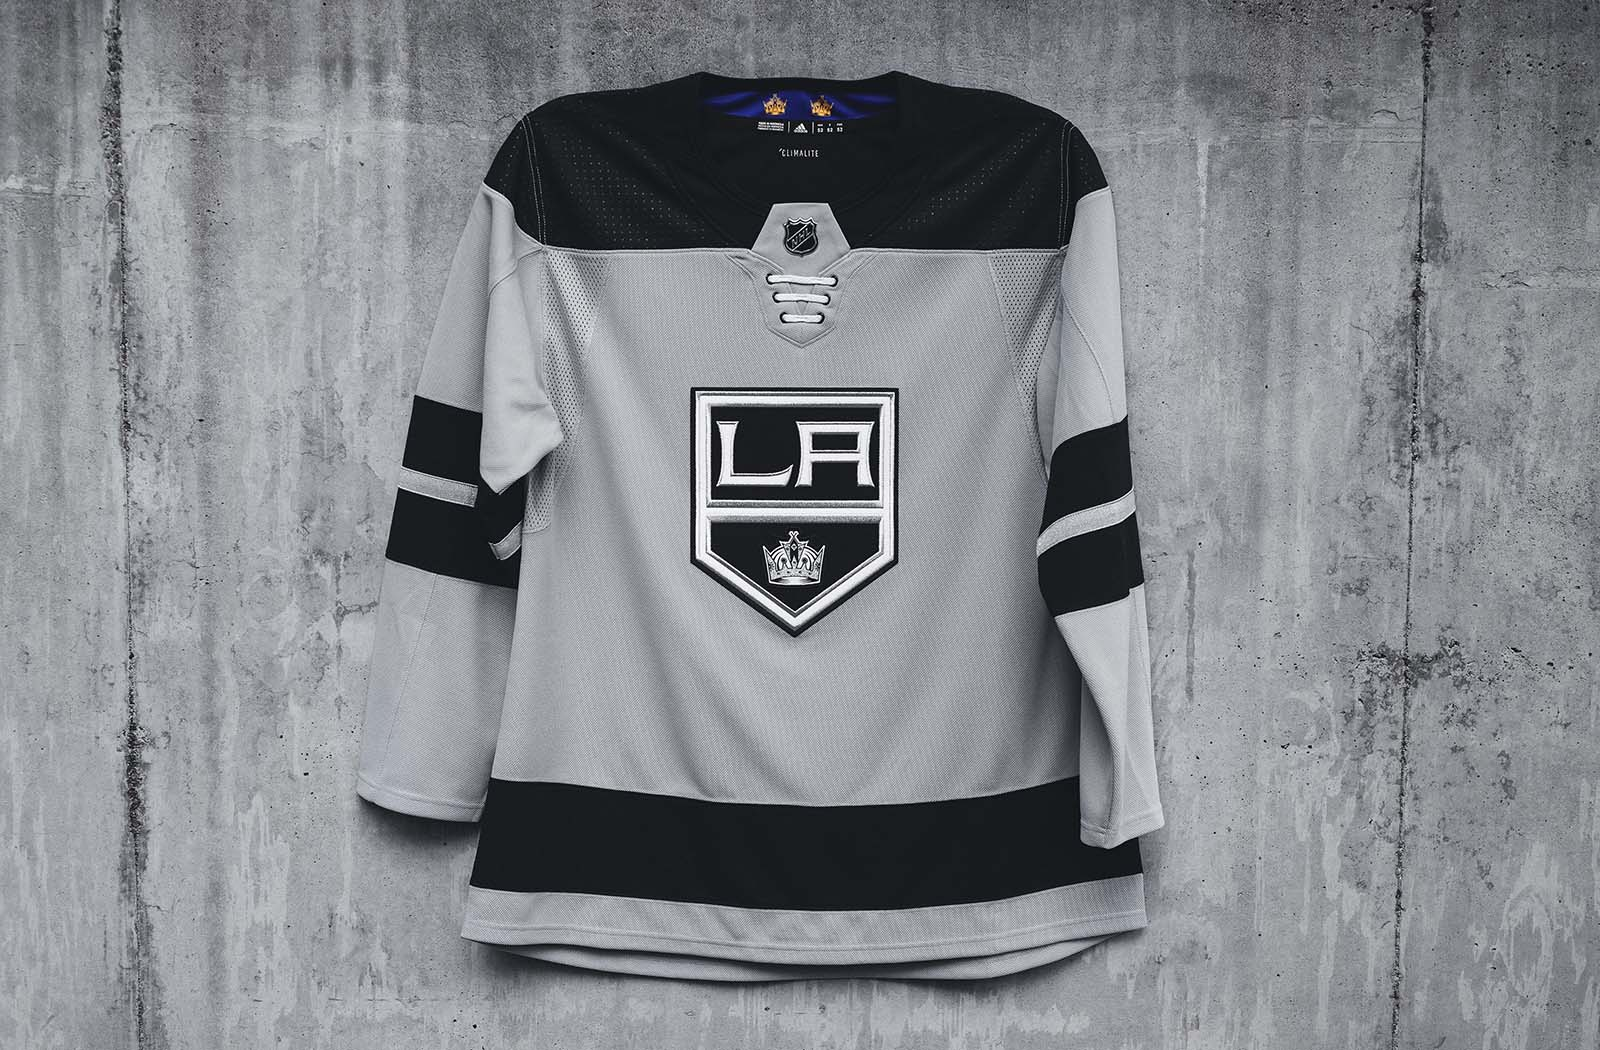 adidasHockey_Kings_SilverJersey_001.jpg